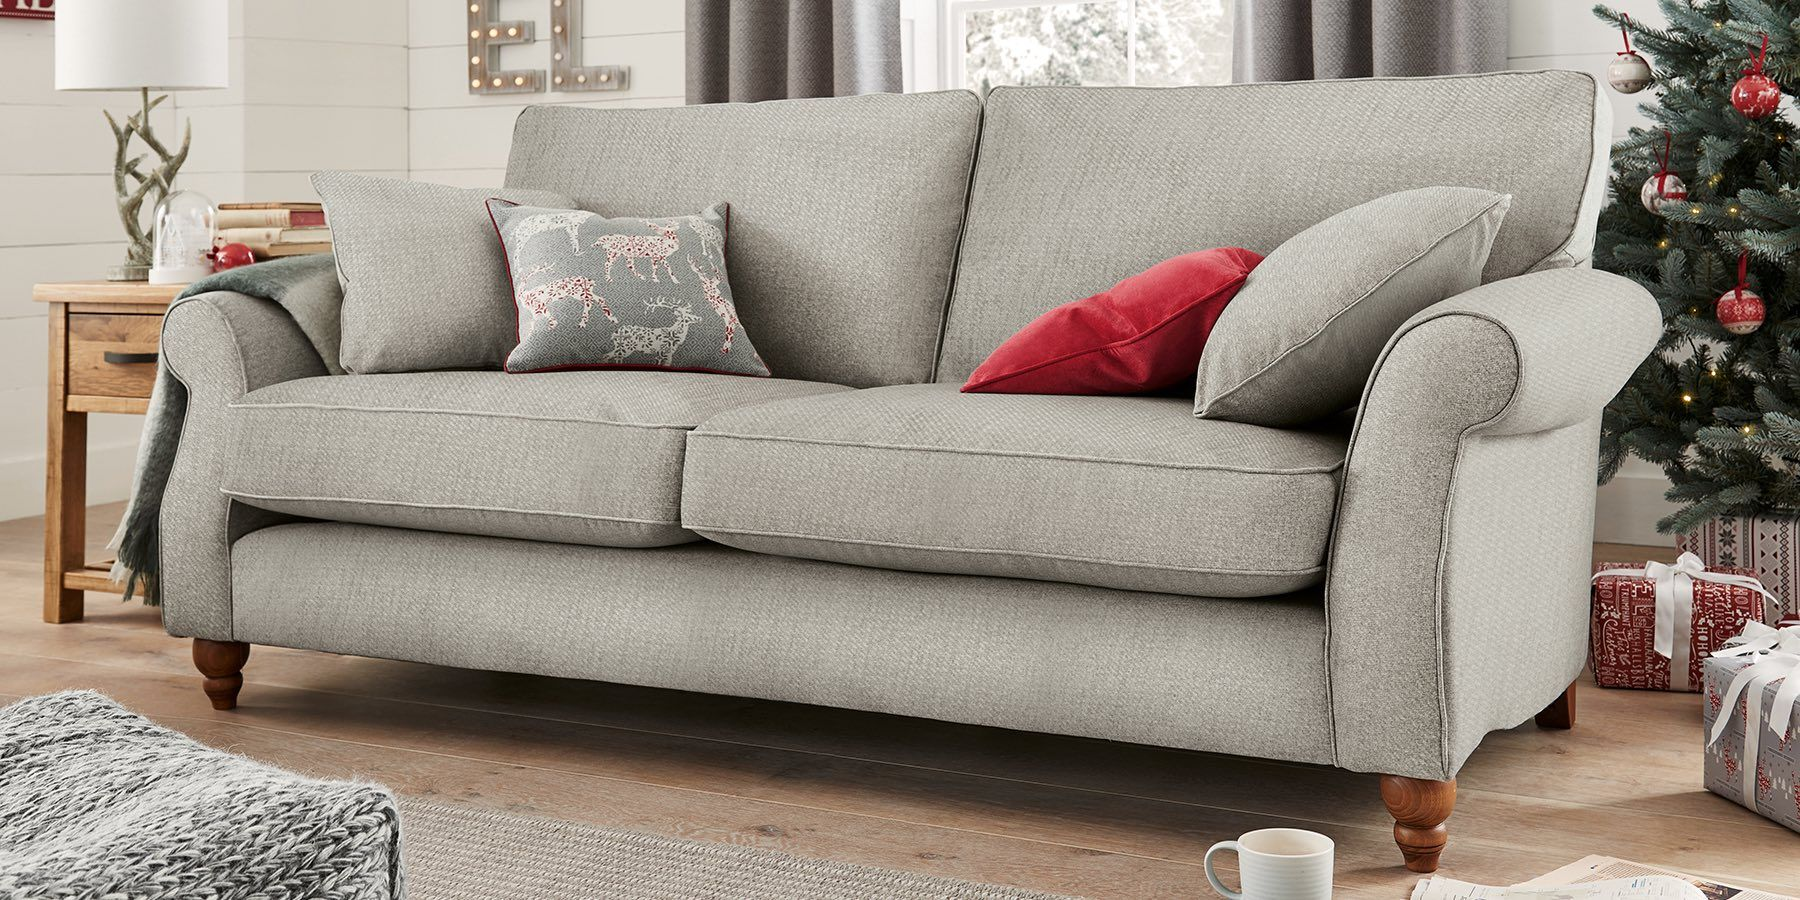 ashford sofa boston interiors stella room and board buy large 3 seats cosy twill light grey low